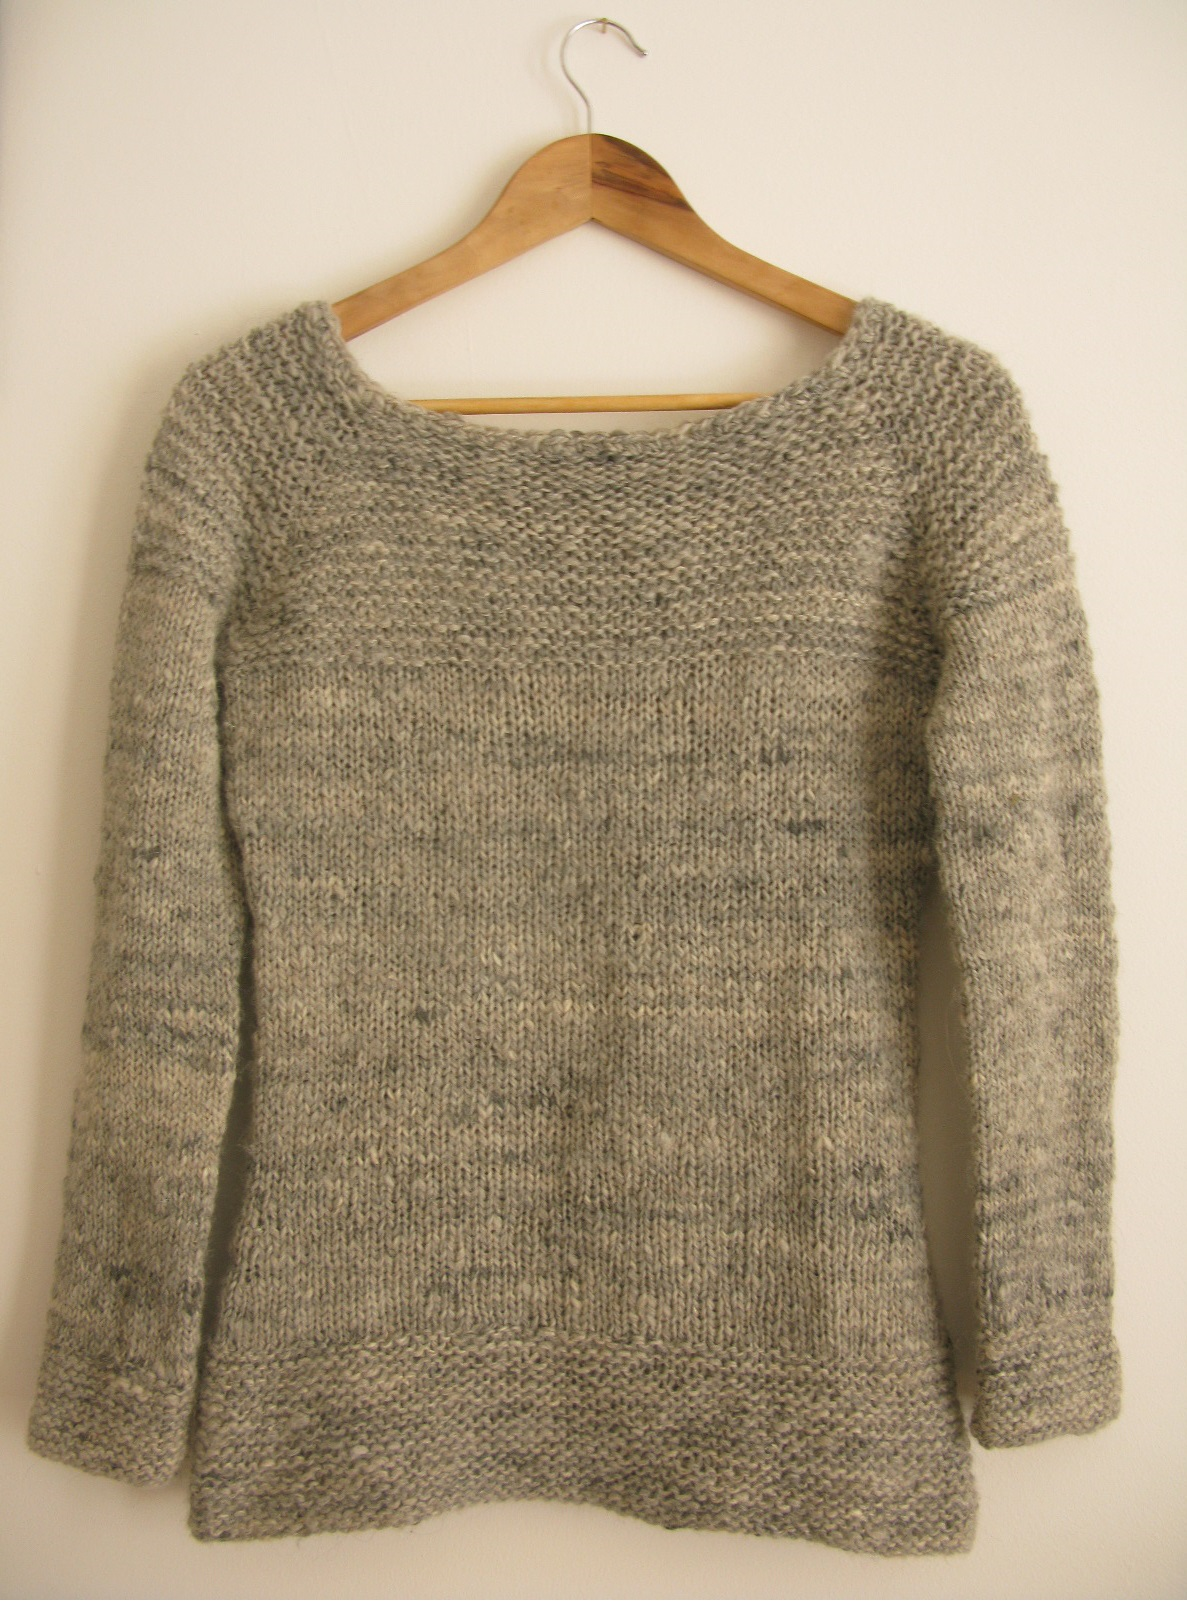 Easy Knitting Pattern For Sweater : Caora Sweater Pattern Caora Fibres